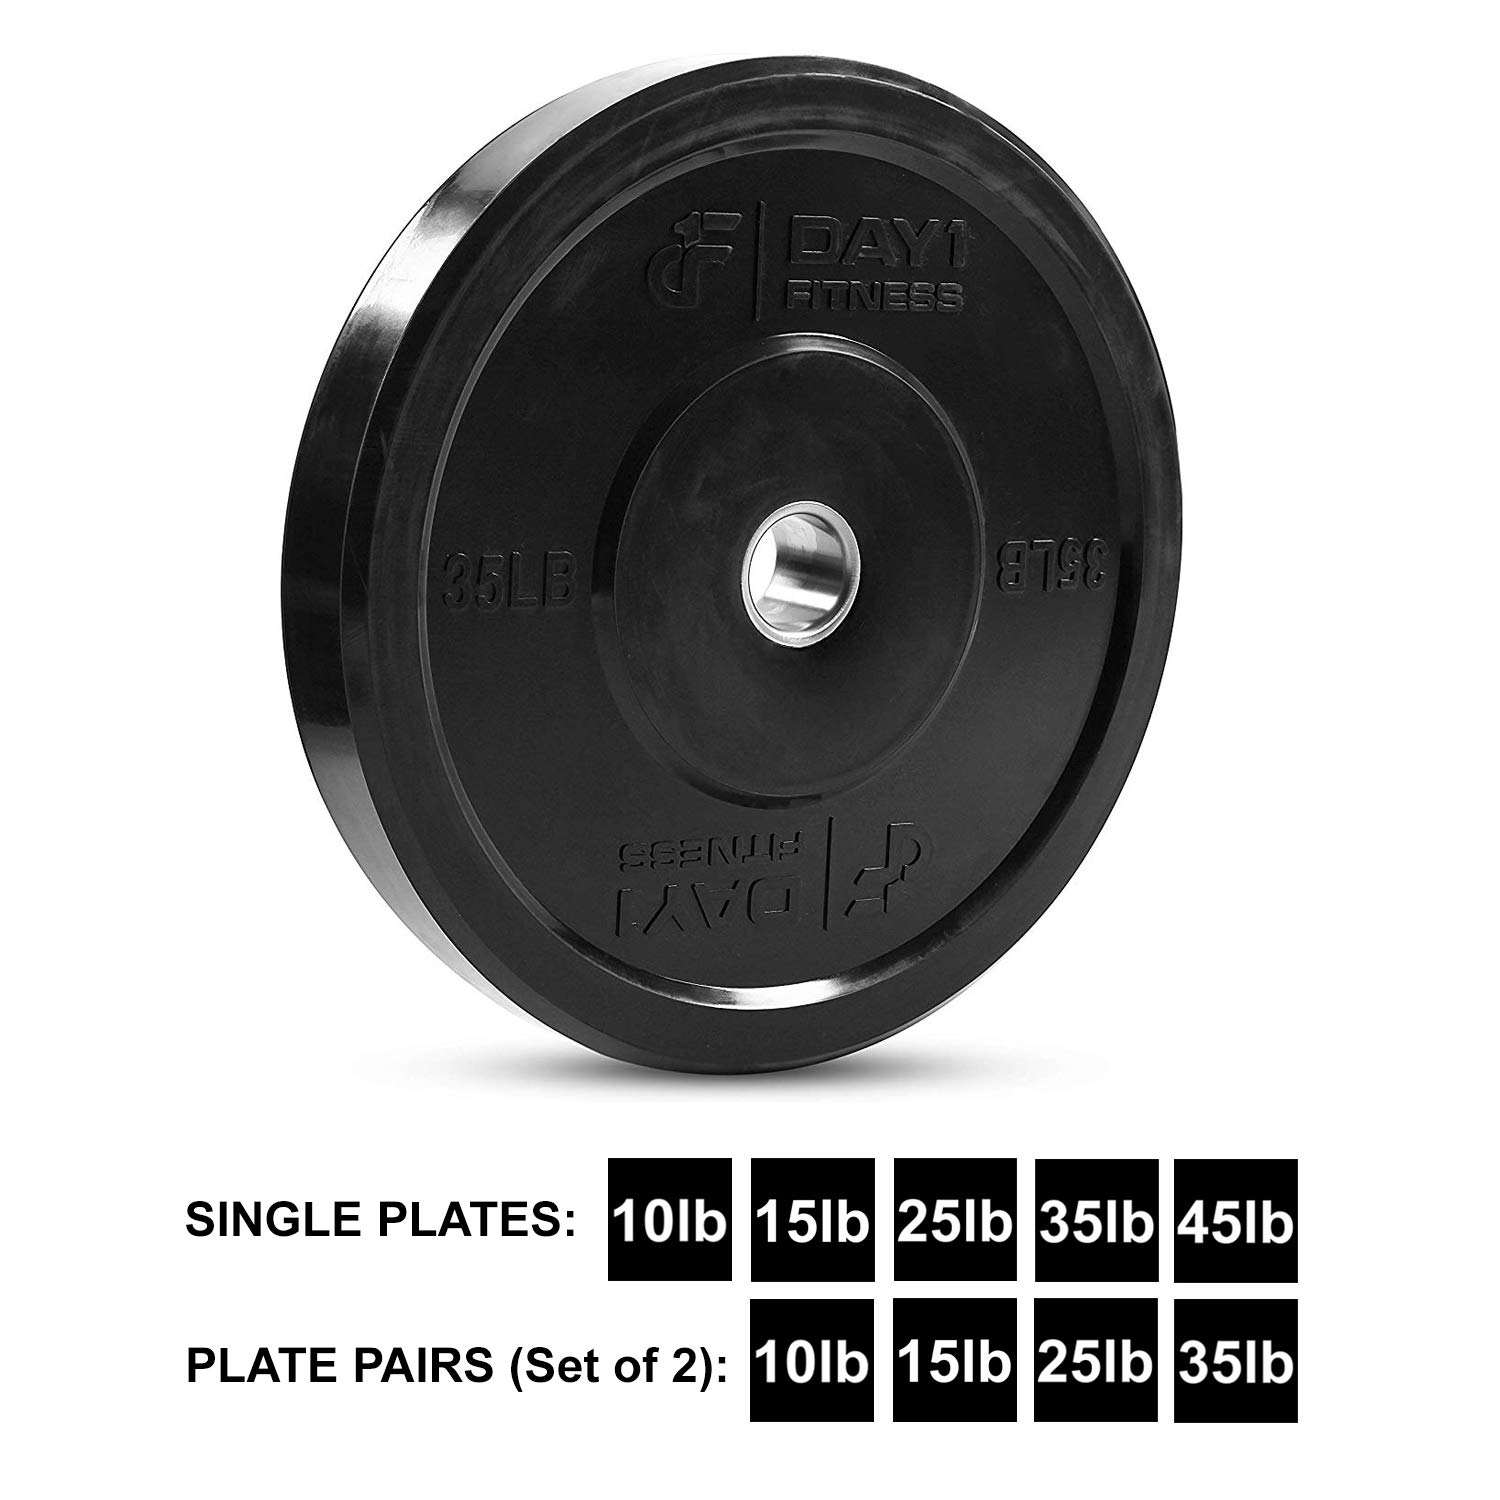 """Day 1 Fitness Olympic Bumper Weighted Plate 2"""" for Barbells, Bars – 35 lb Single Plate - Shock-Absorbing, Minimal Bounce Steel Weights with Bumpers for Lifting, Strength Training, and Working Out by Day 1 Fitness (Image #1)"""